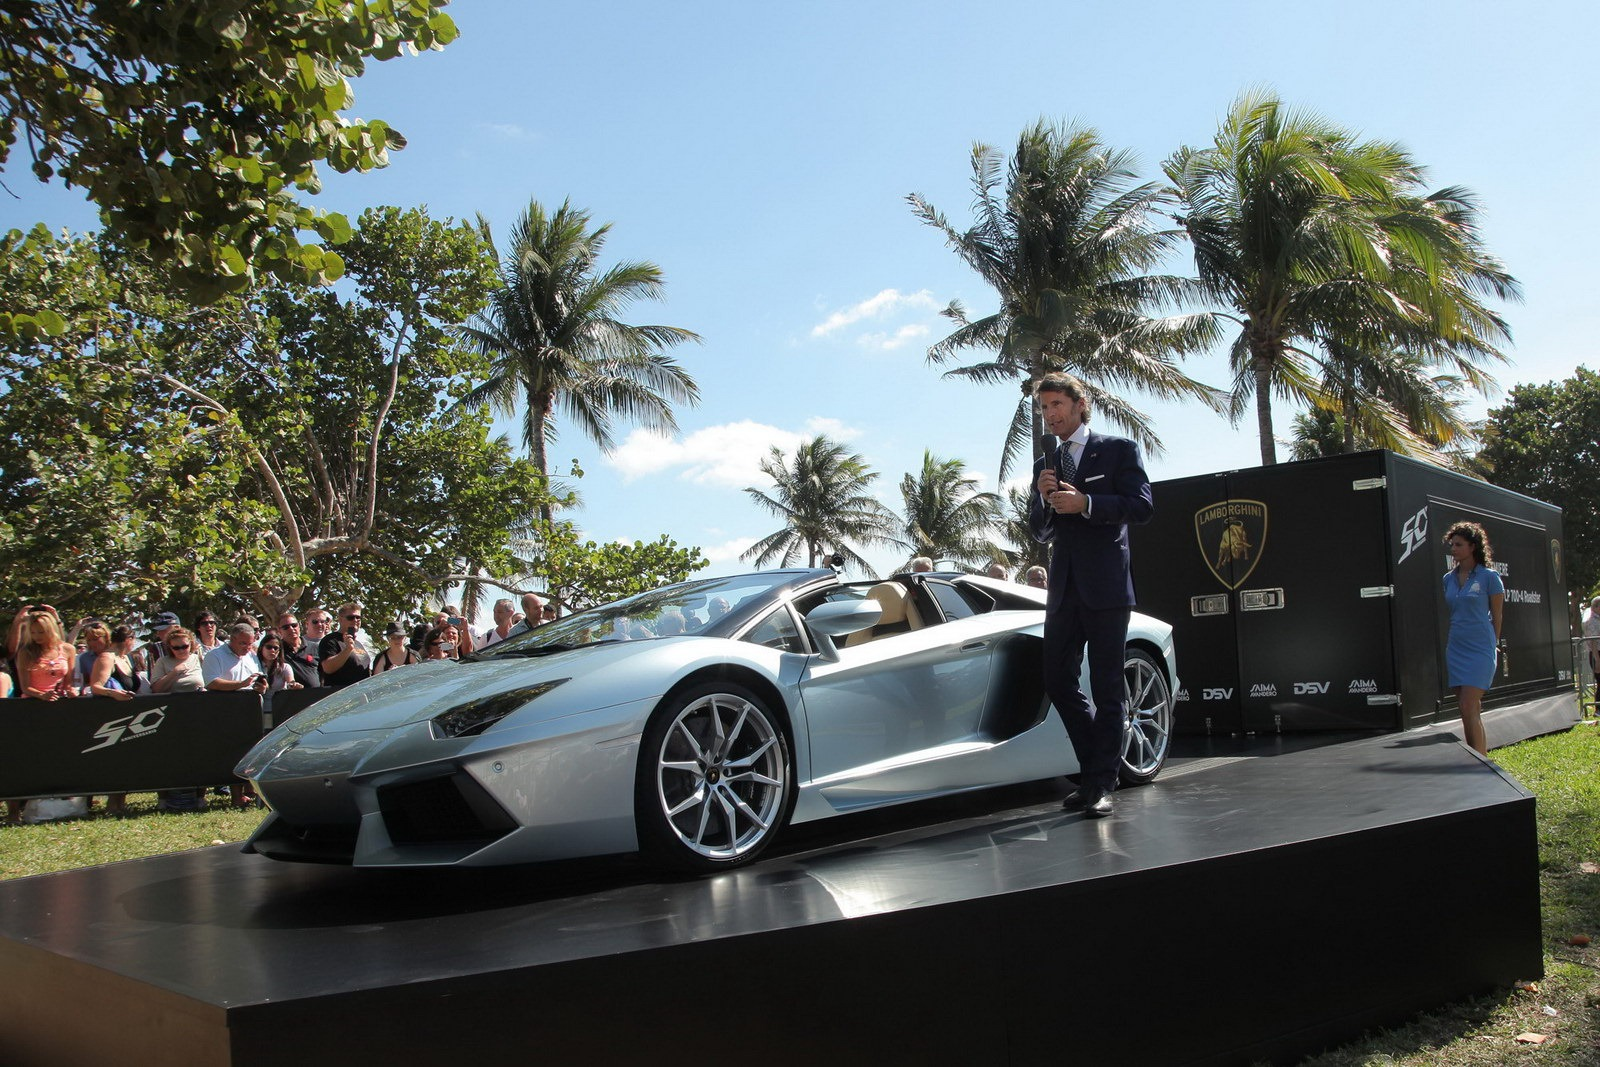 Lamborghini-Aventador-Roadster-Miami-Launch-4[4]